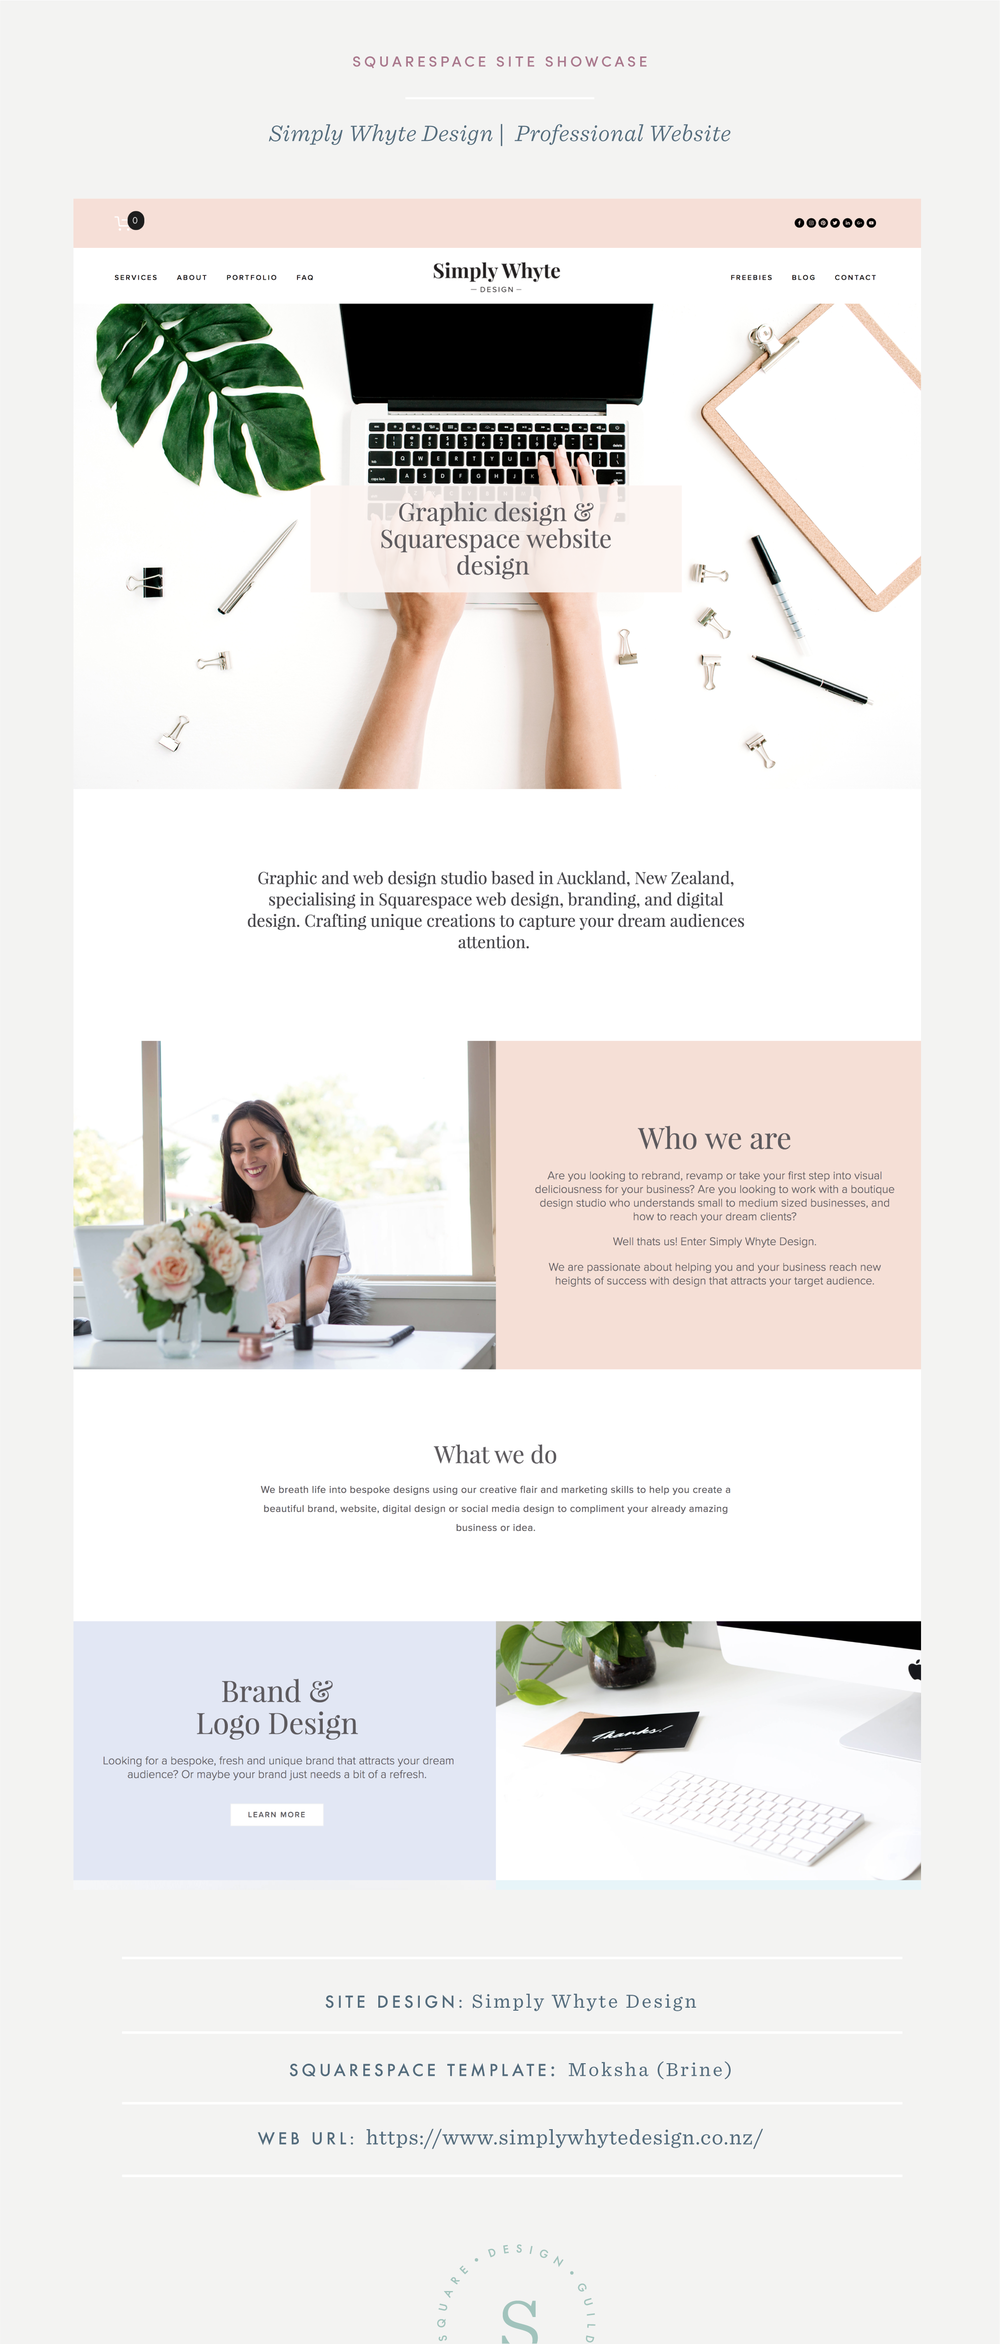 Simply Whyte DesignSiteShowcase_FullPost.png